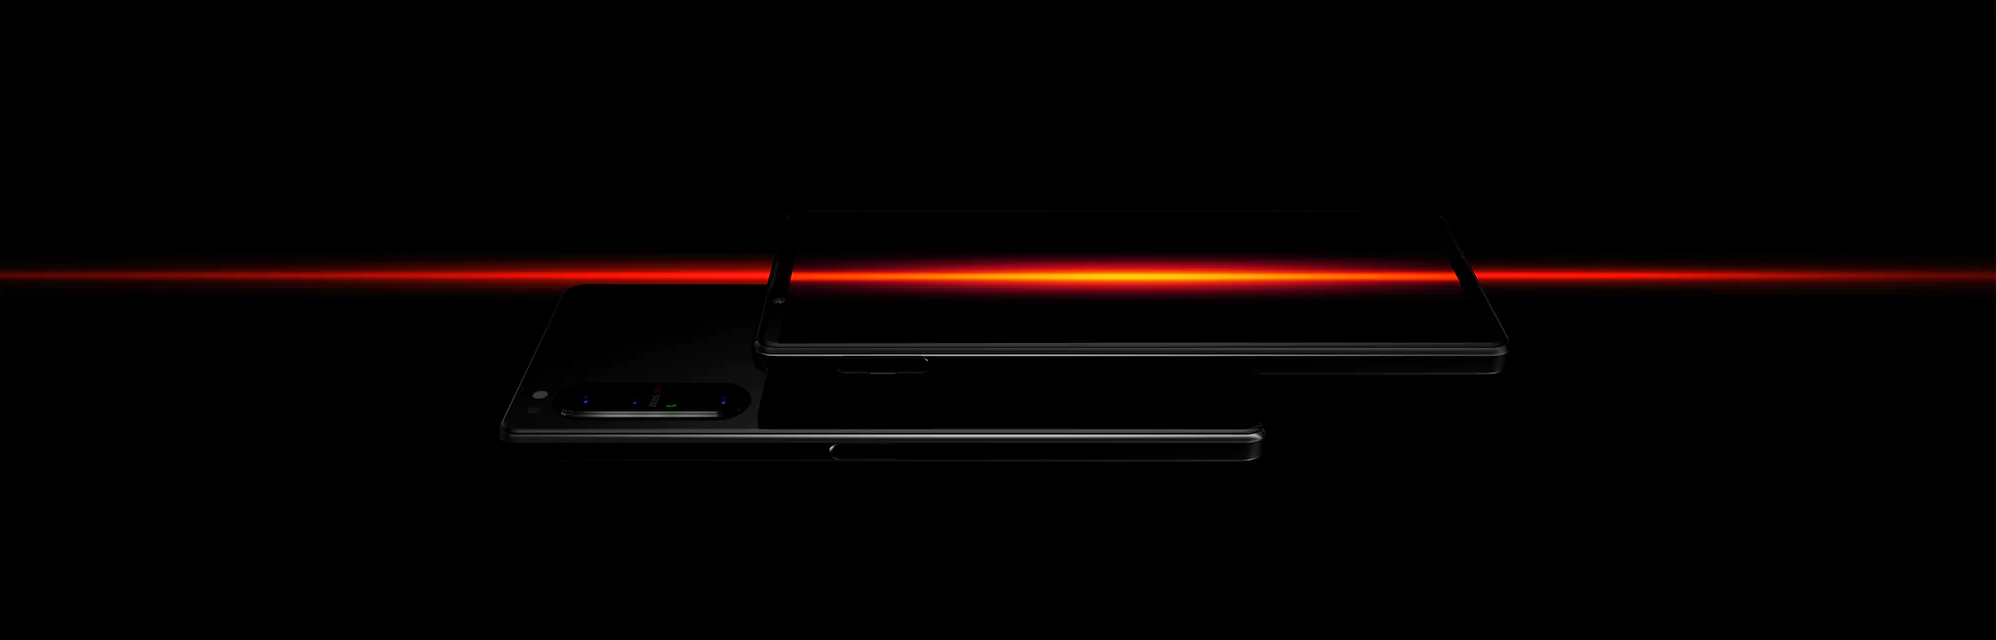 Sony Xperia 1 II - oficial render image